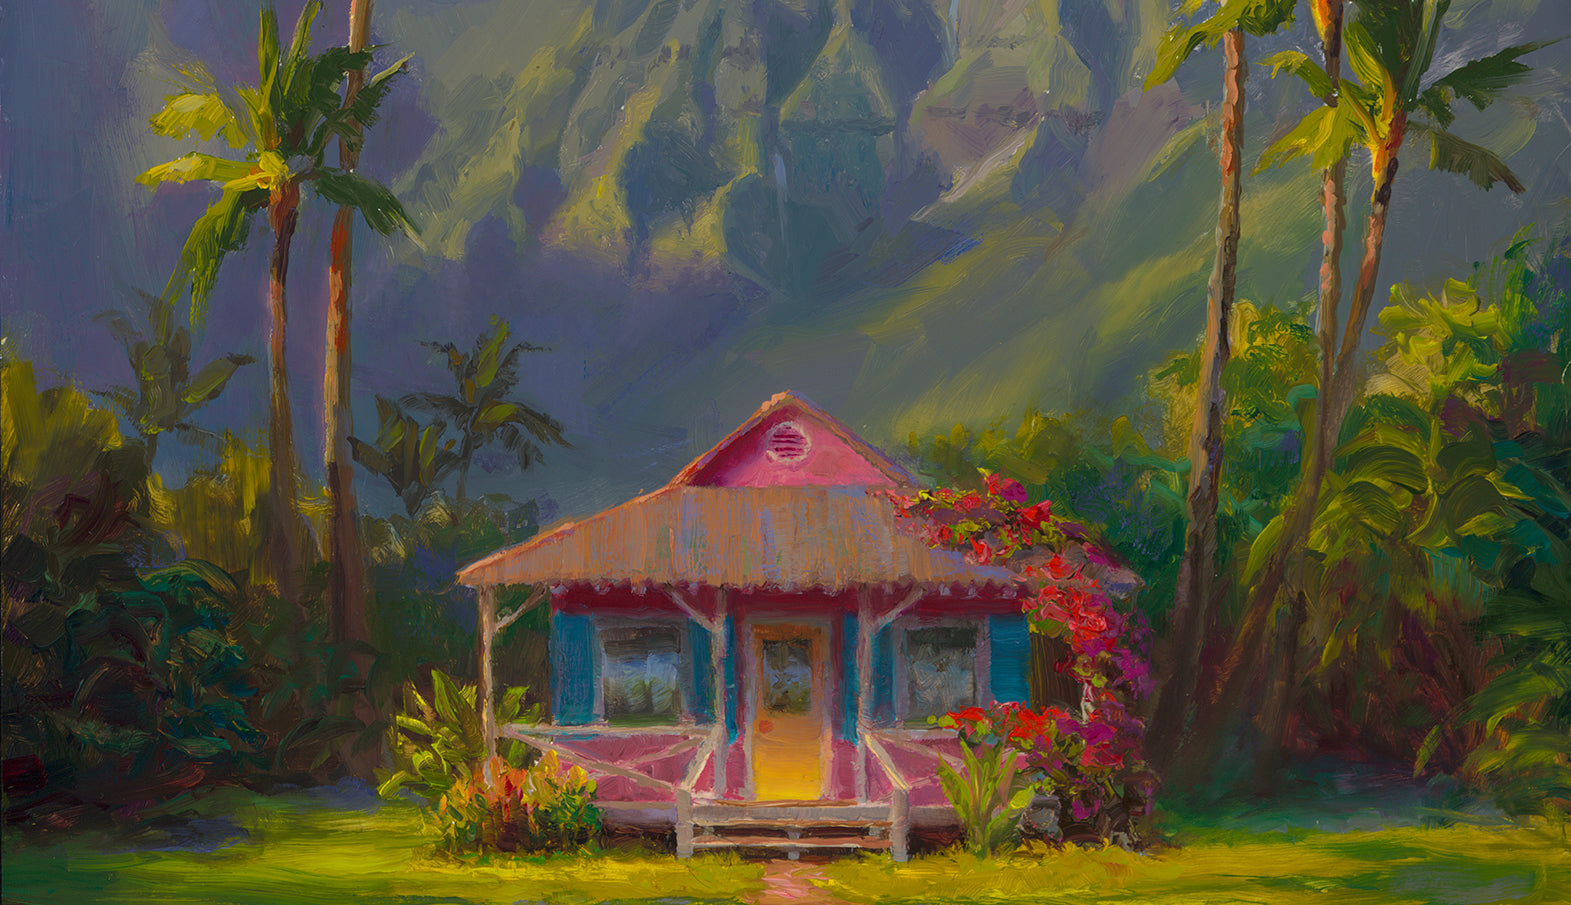 Painting of Hanalei Cottage and palm trees, Hawaiian landscape